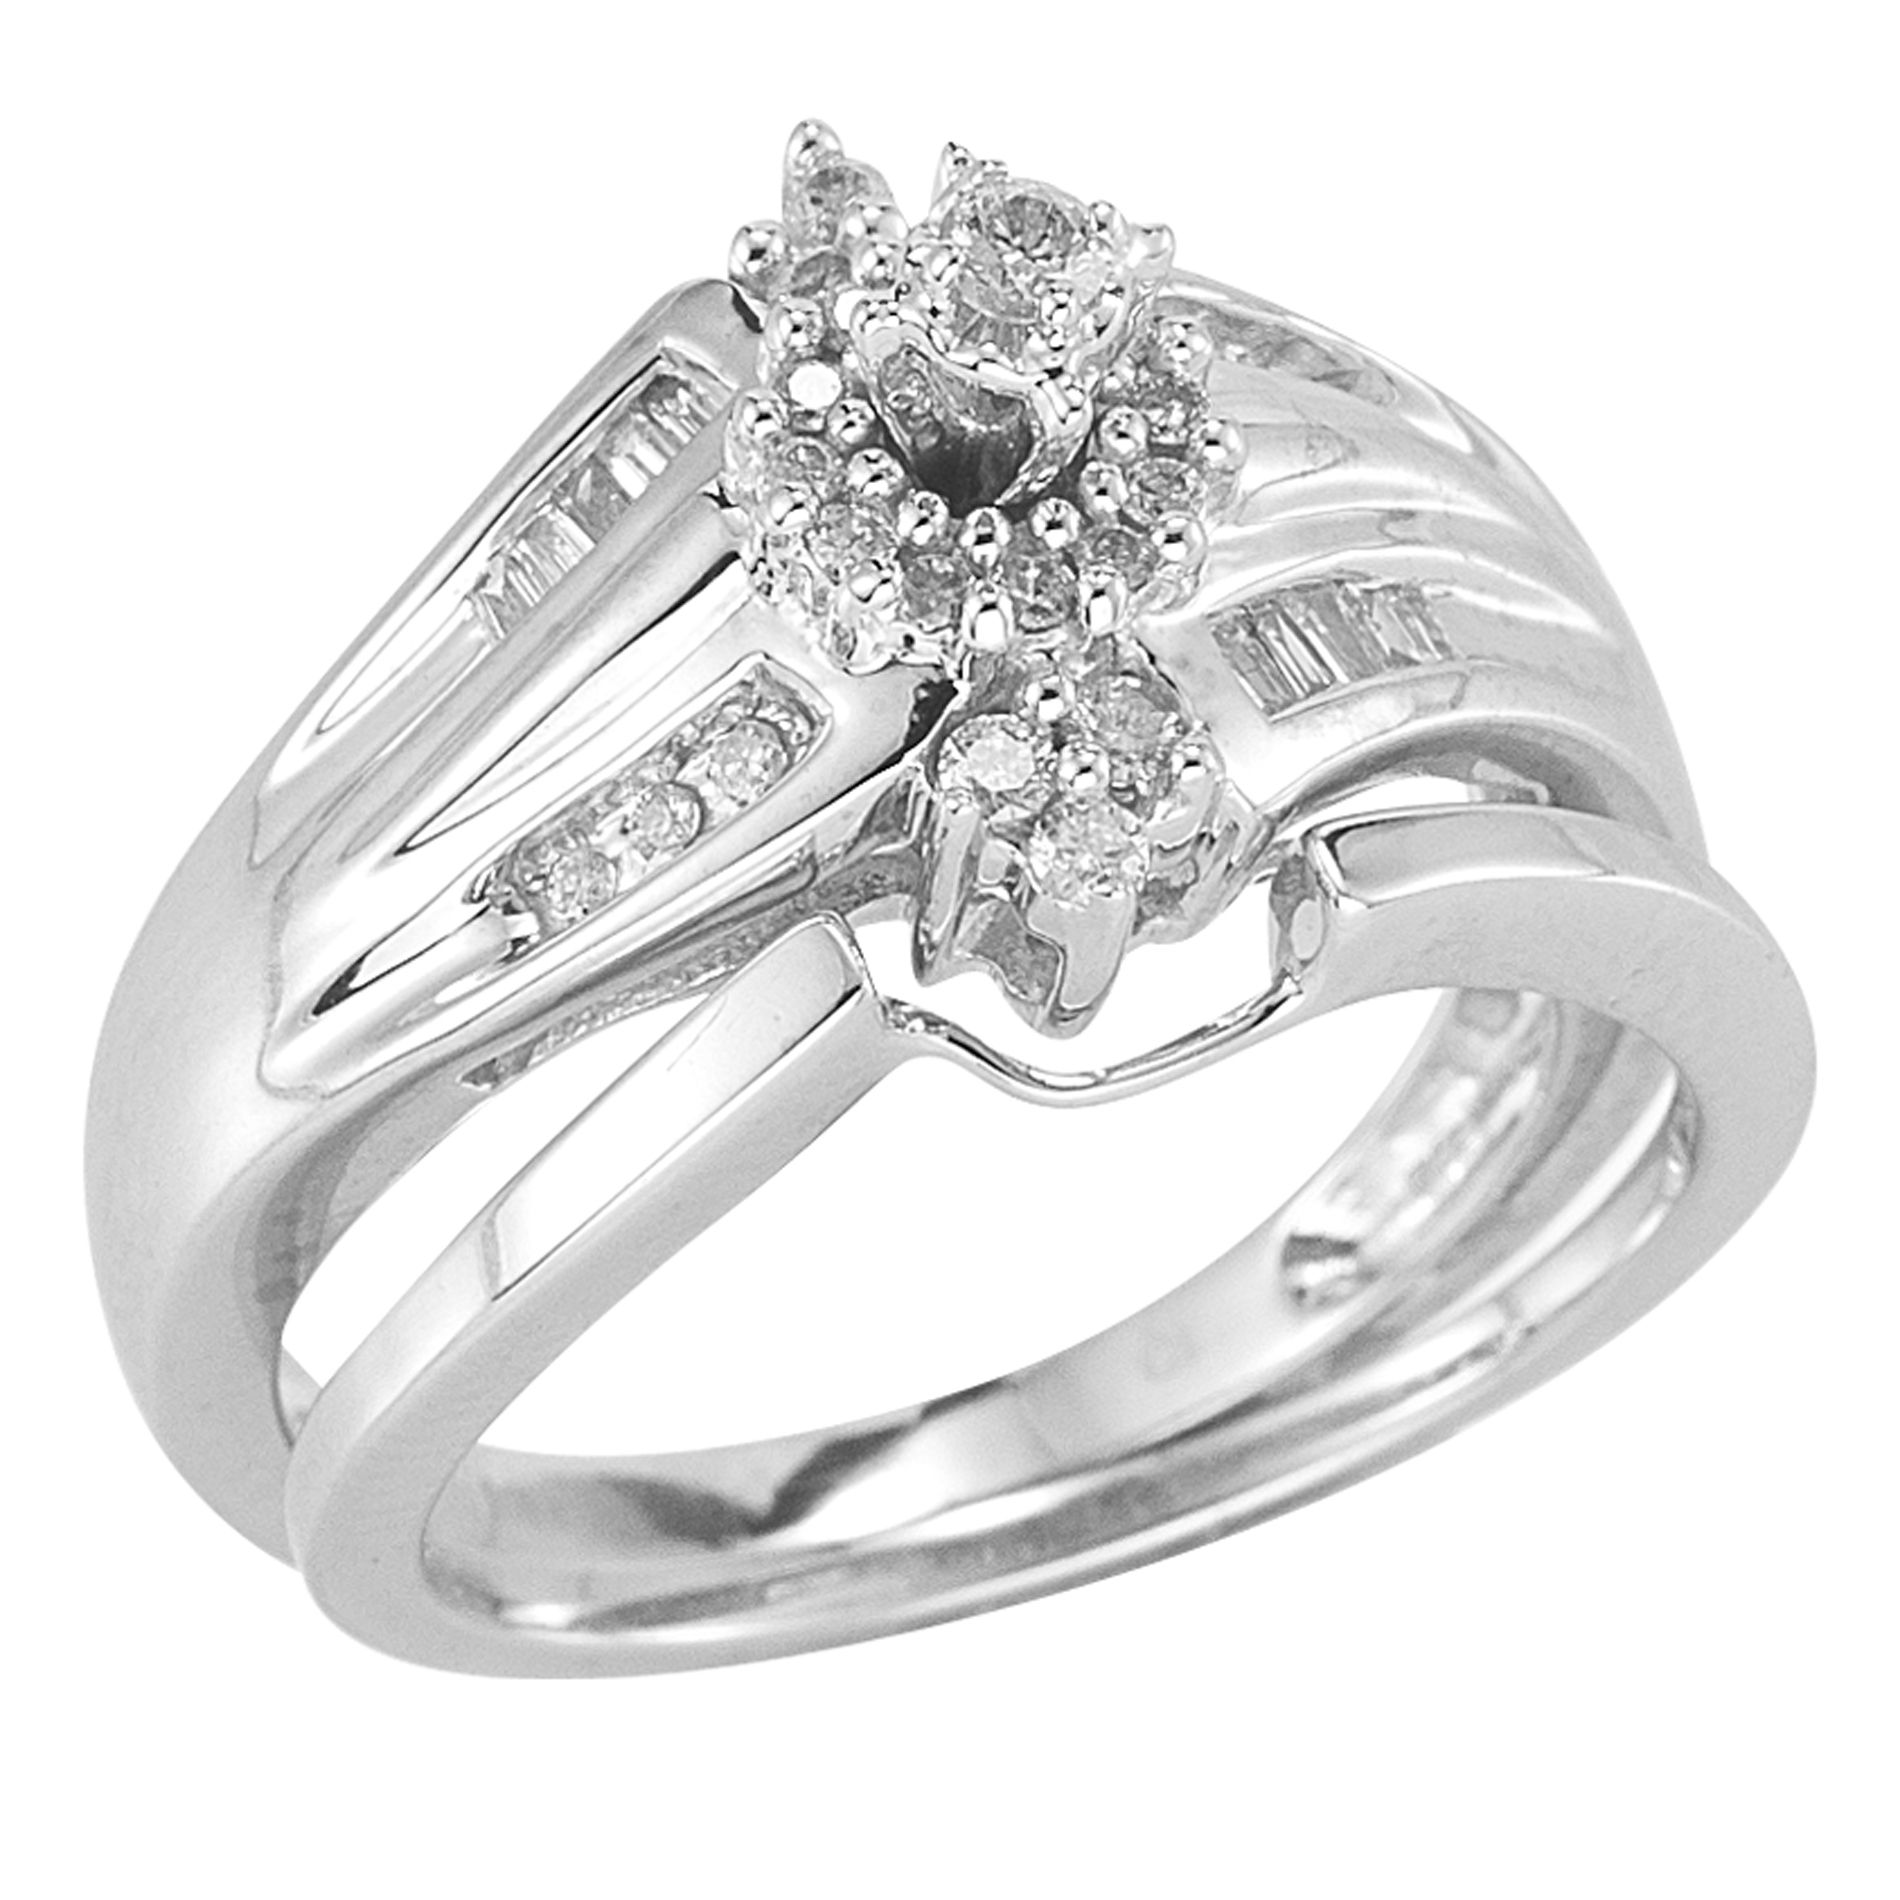 10Kt White Gold 1/3Cttw Diamond Bridal Set